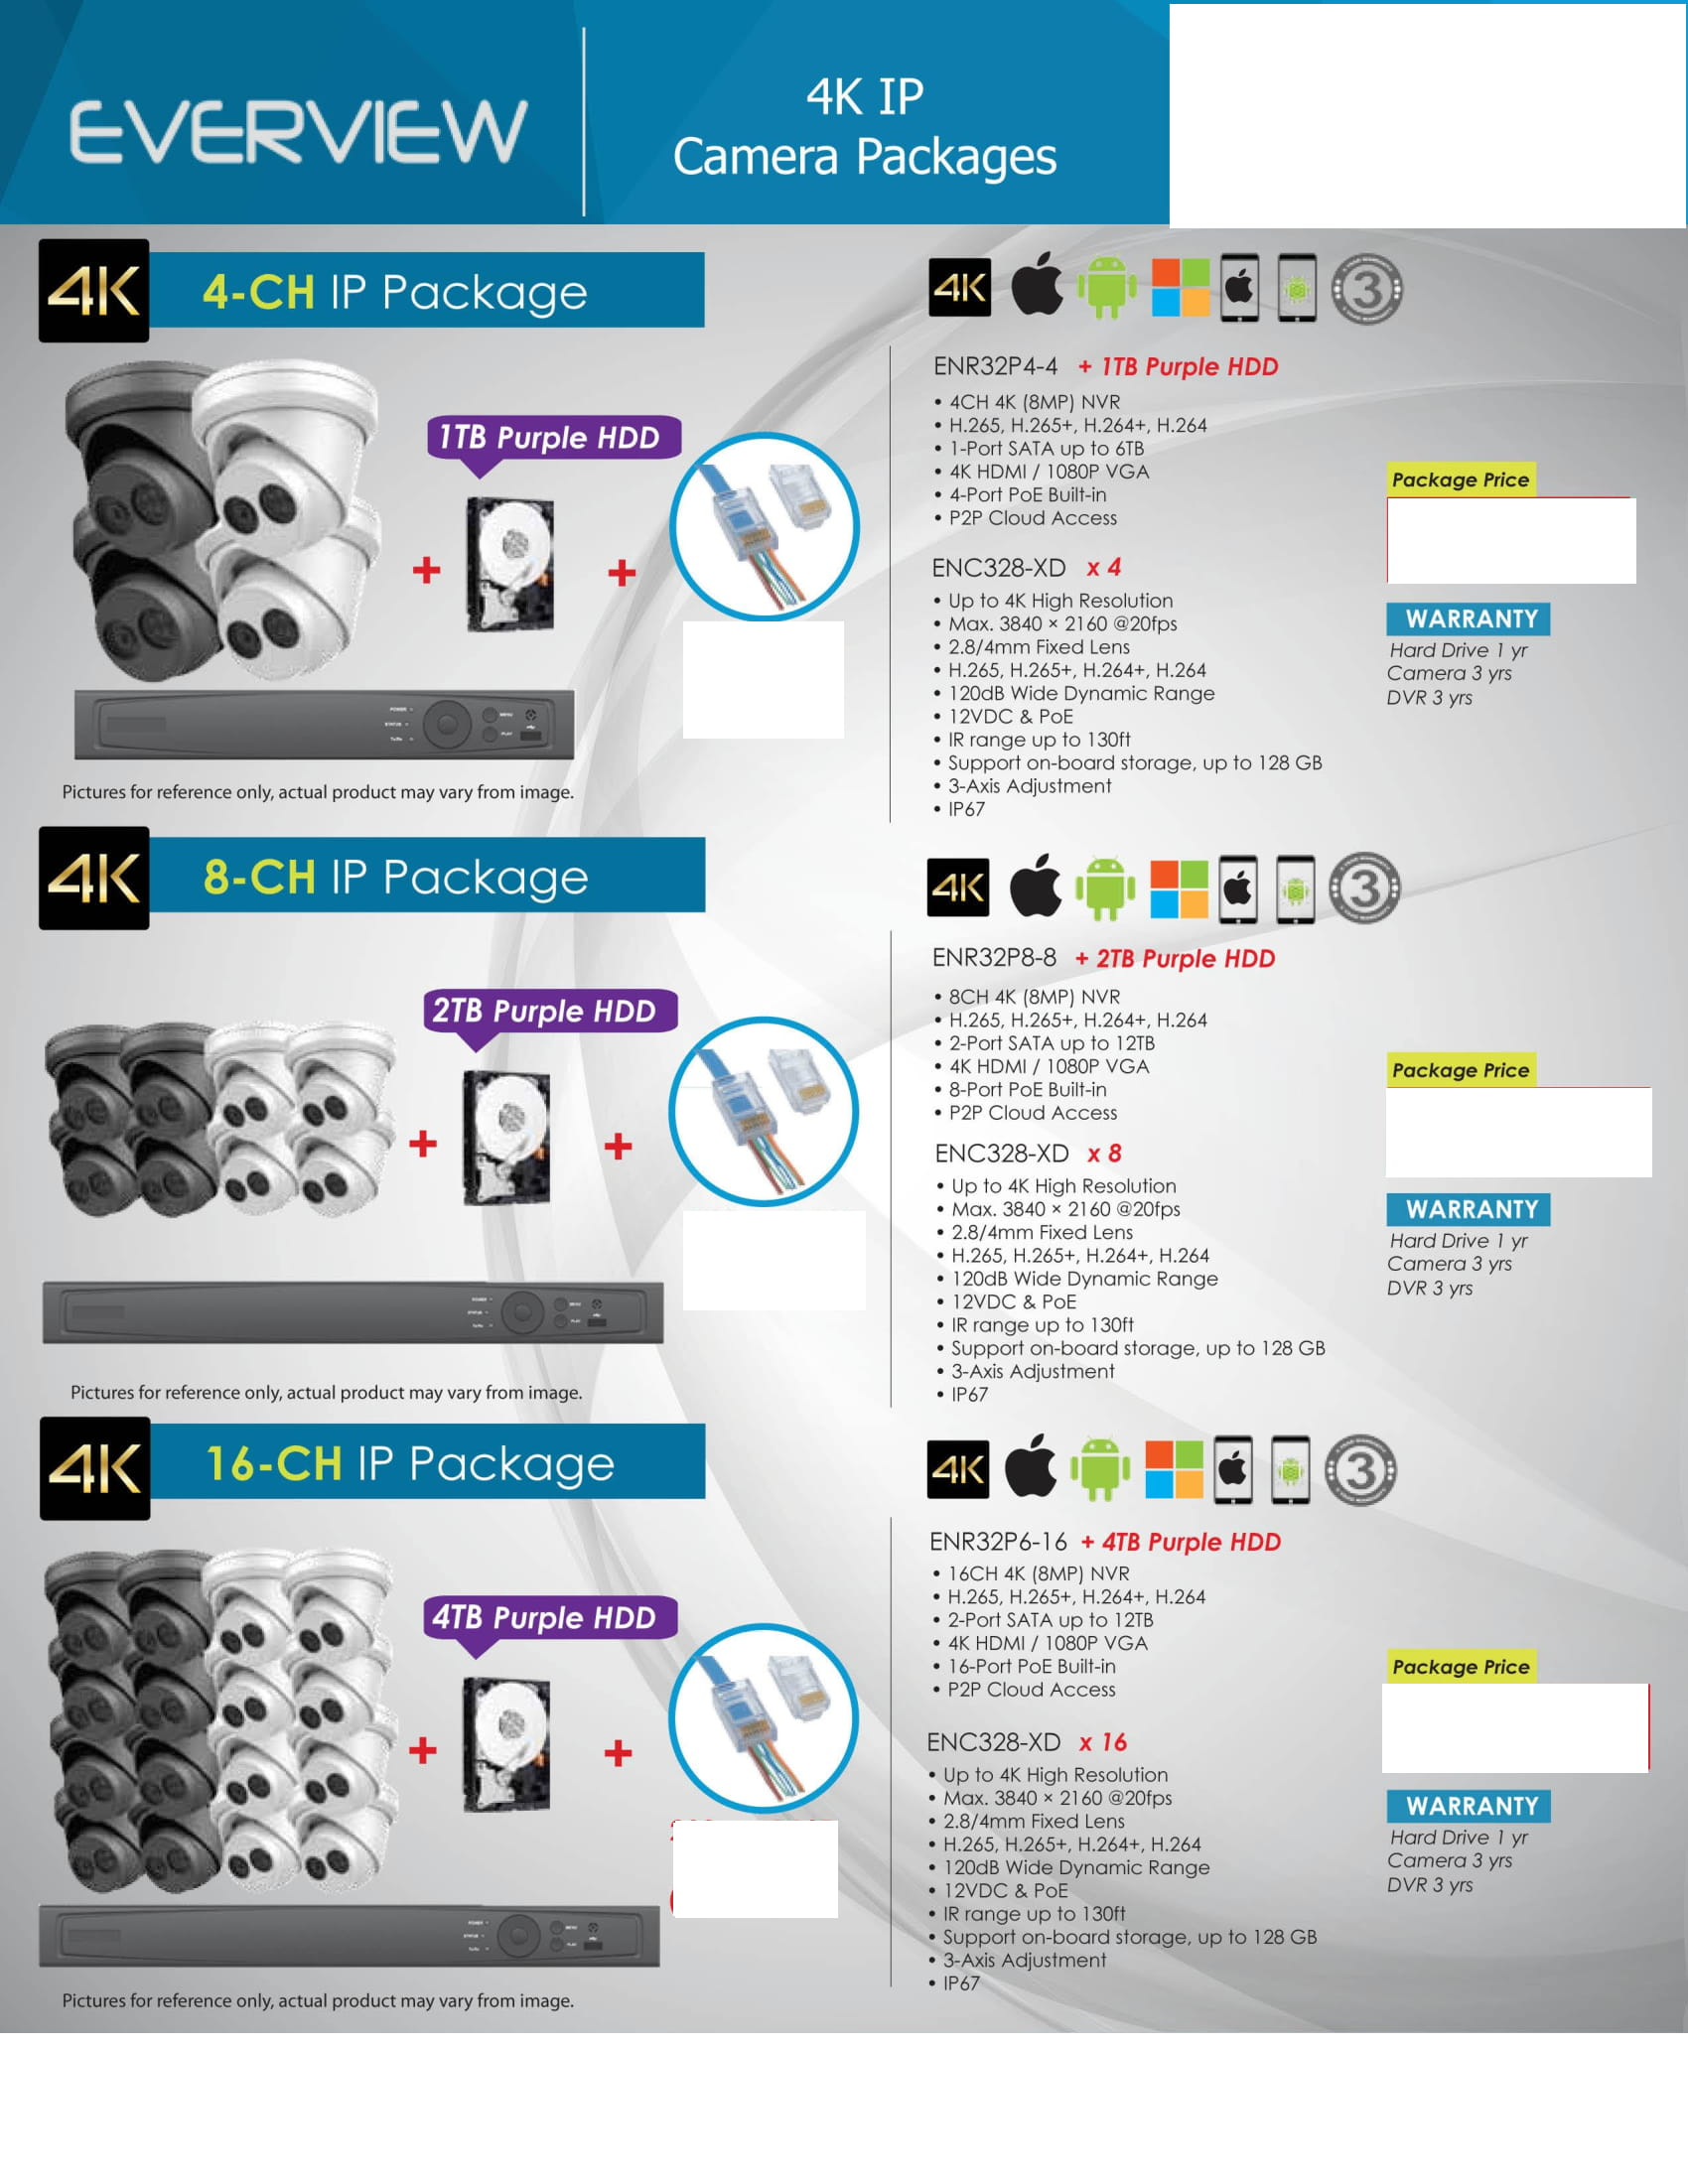 Everview_-Packages-_No-Price-4 HD Camera Packages Full Promotion Price - Compare & Shop